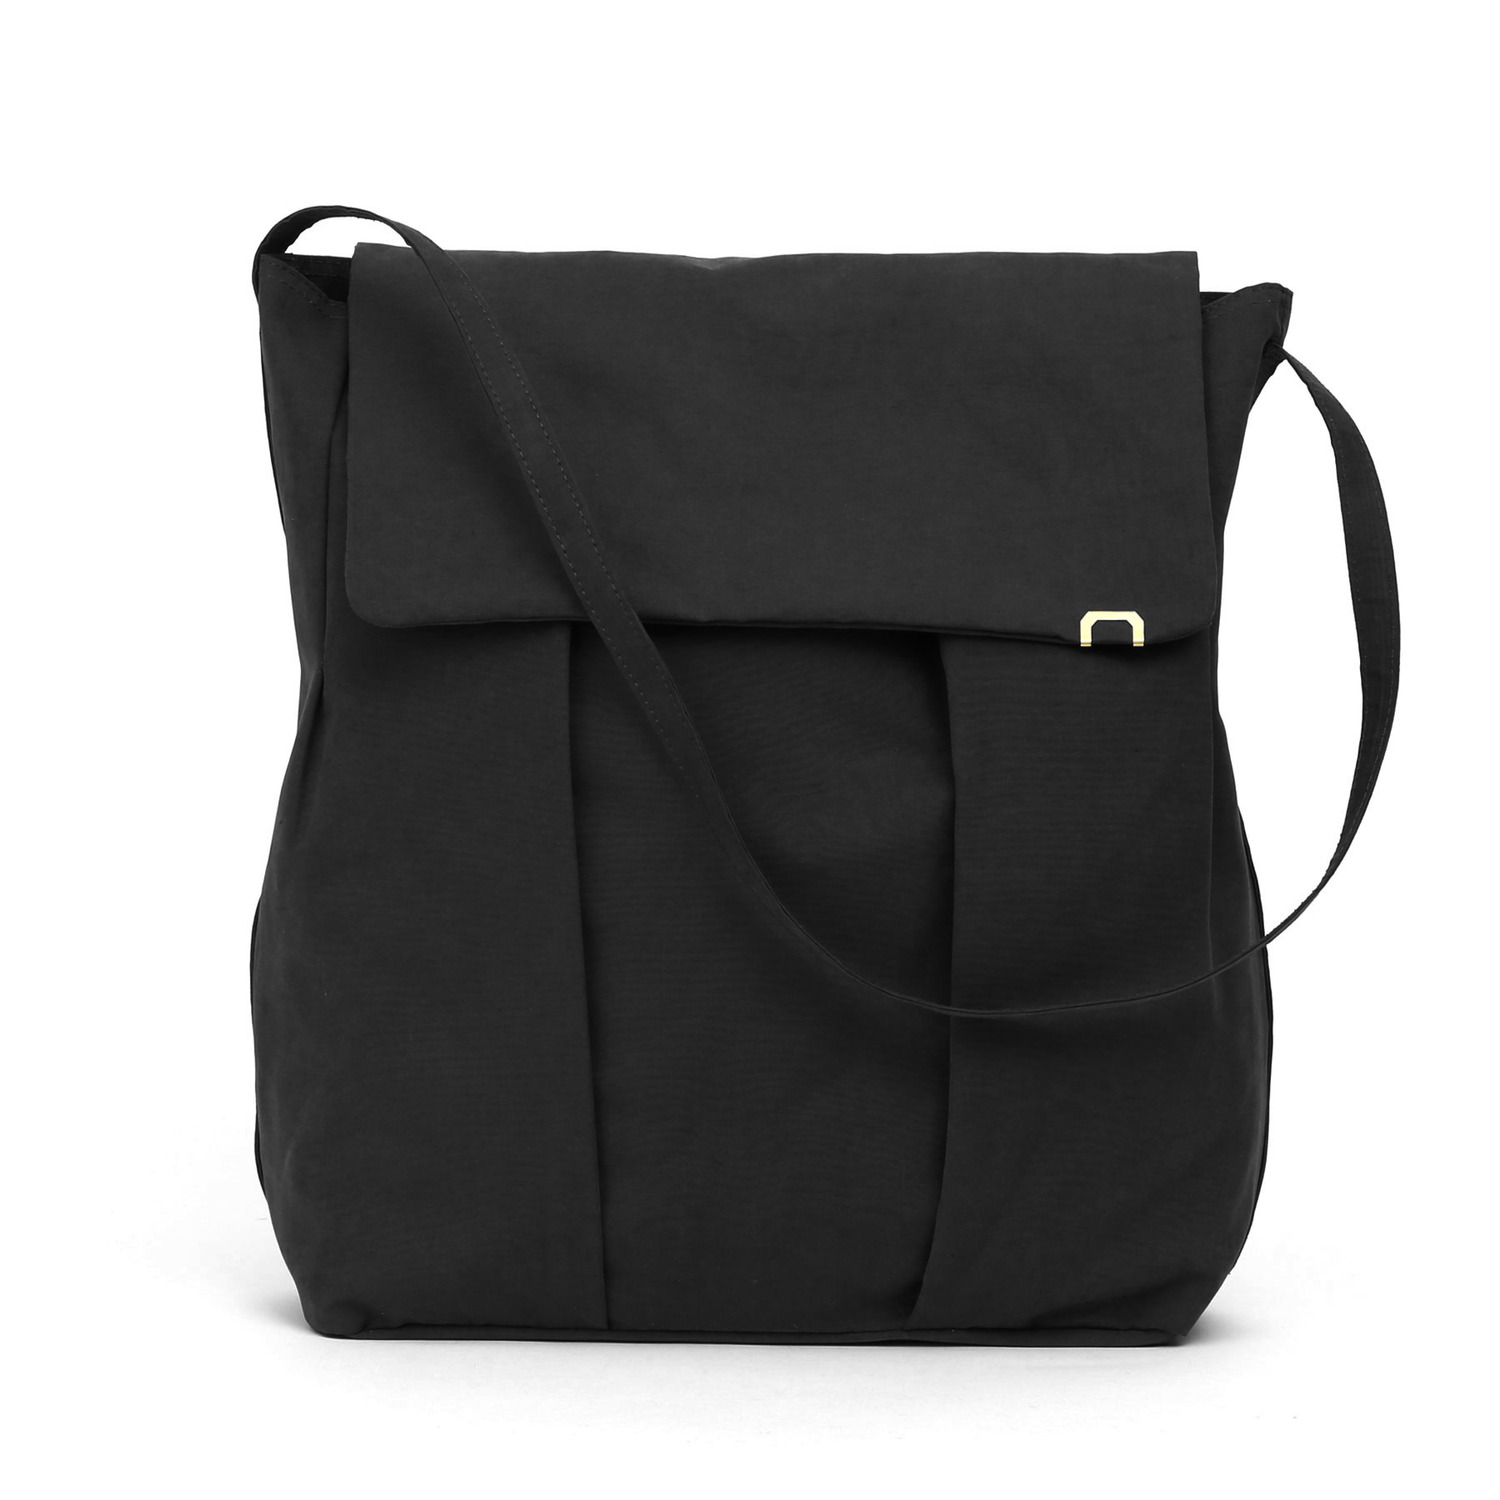 LADDER BAG / WRINKLE / NPC / DARK BLACK